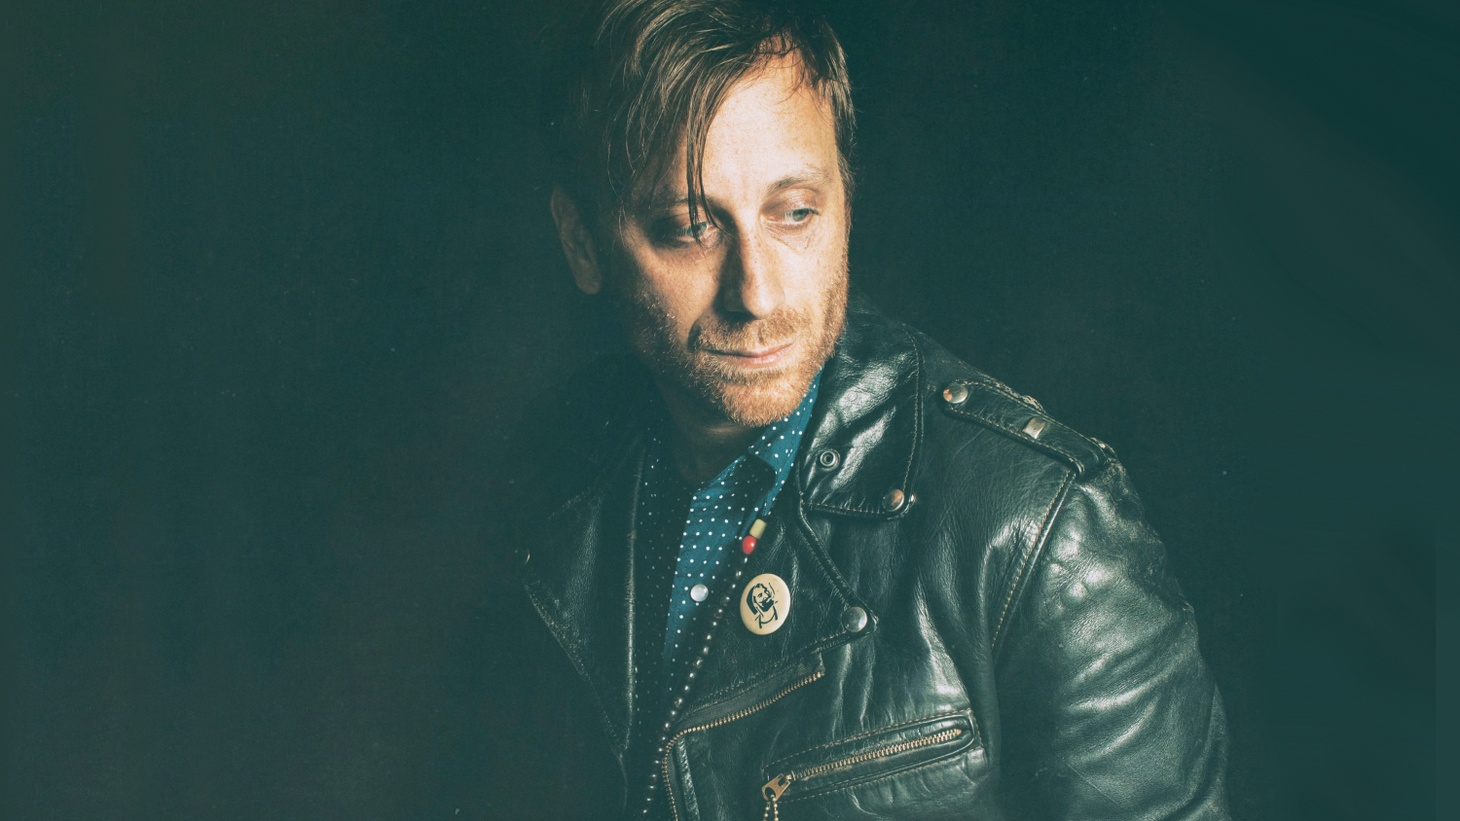 On his new side project, the Black Keys' Dan Auerbach satiates his thirst as music maker with a group of hand-picked studio musicians that includes Richard Swift.